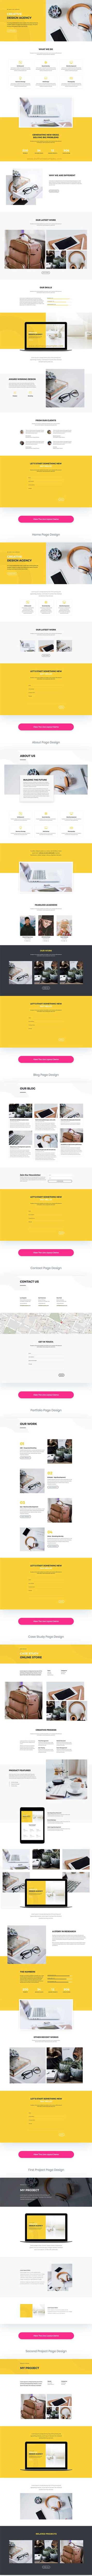 free divi layout for creative agency